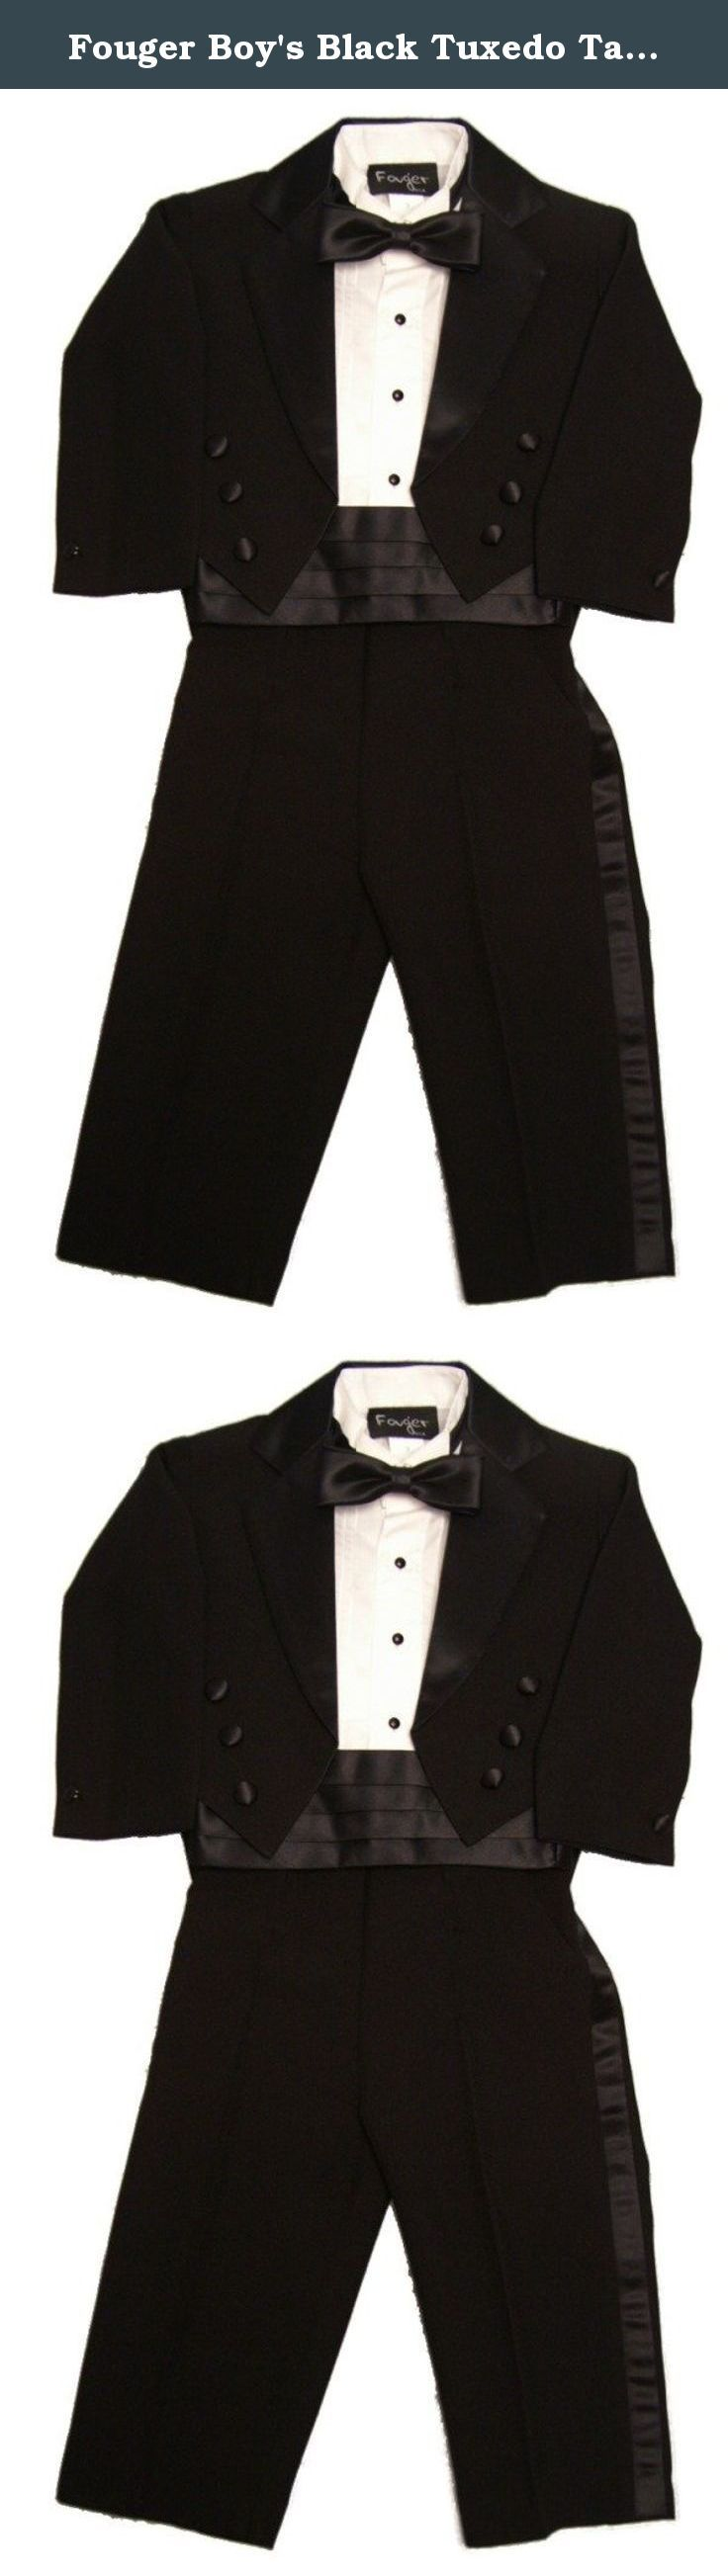 Fouger Boy's Black Tuxedo Tails Formal Set 6 months. Budget boy's formal outfit is nice for the price! This 5-piece poly/rayon tuxedo looks just like a men's traditional tux. The set includes elastic waist tuxedo stripe pants, constructed tuxedo tails jacket which is fully lined, plus a white lightweight tuxedo shirt (runs really slim), cummerbund and a bow tie. The outfit is a nice quality, but has a bit of sheen to the fabric. The tuxedo set runs really slim, and basically small overall…